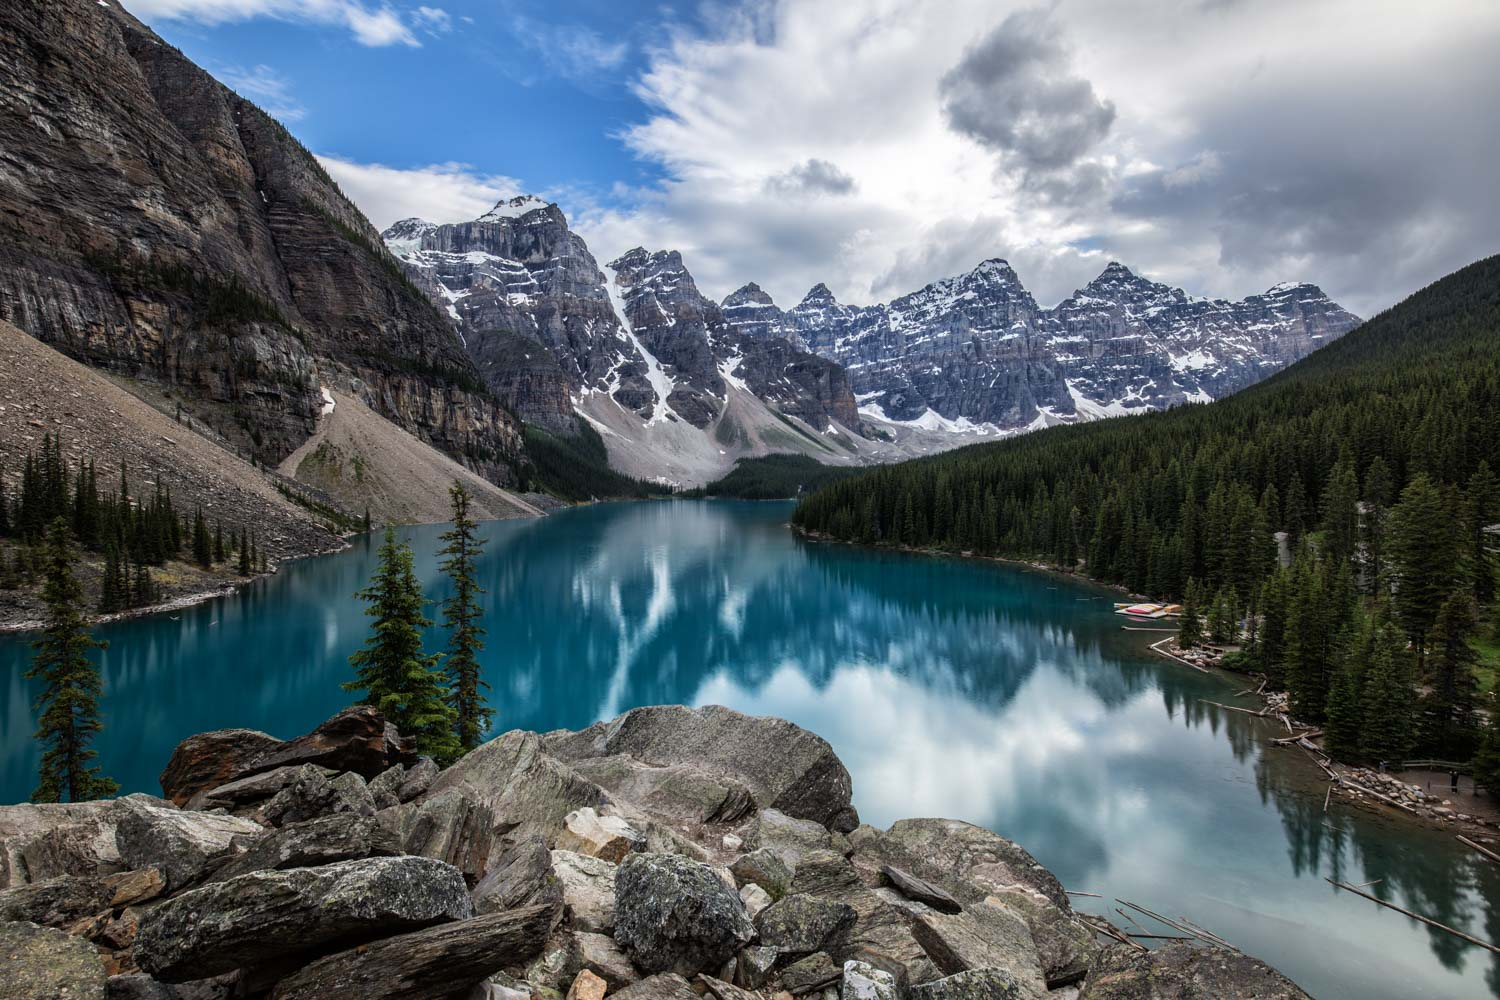 Moraine Lake - Lake Luise National Park, Canada - Landscape Photography